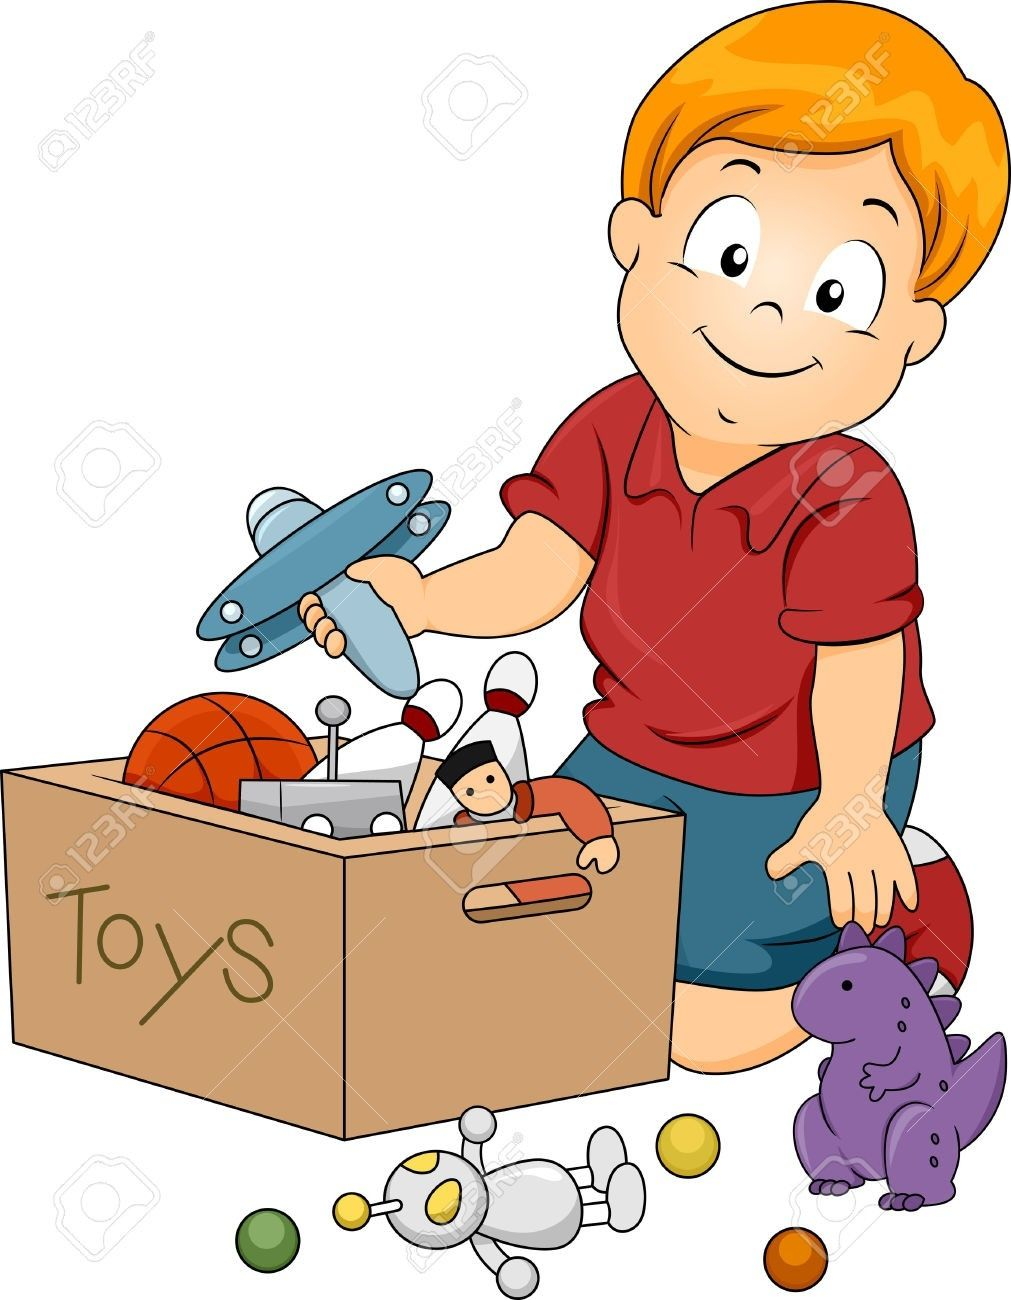 clip art free stock Kids playing with toys clipart. Pin on cleaning up.